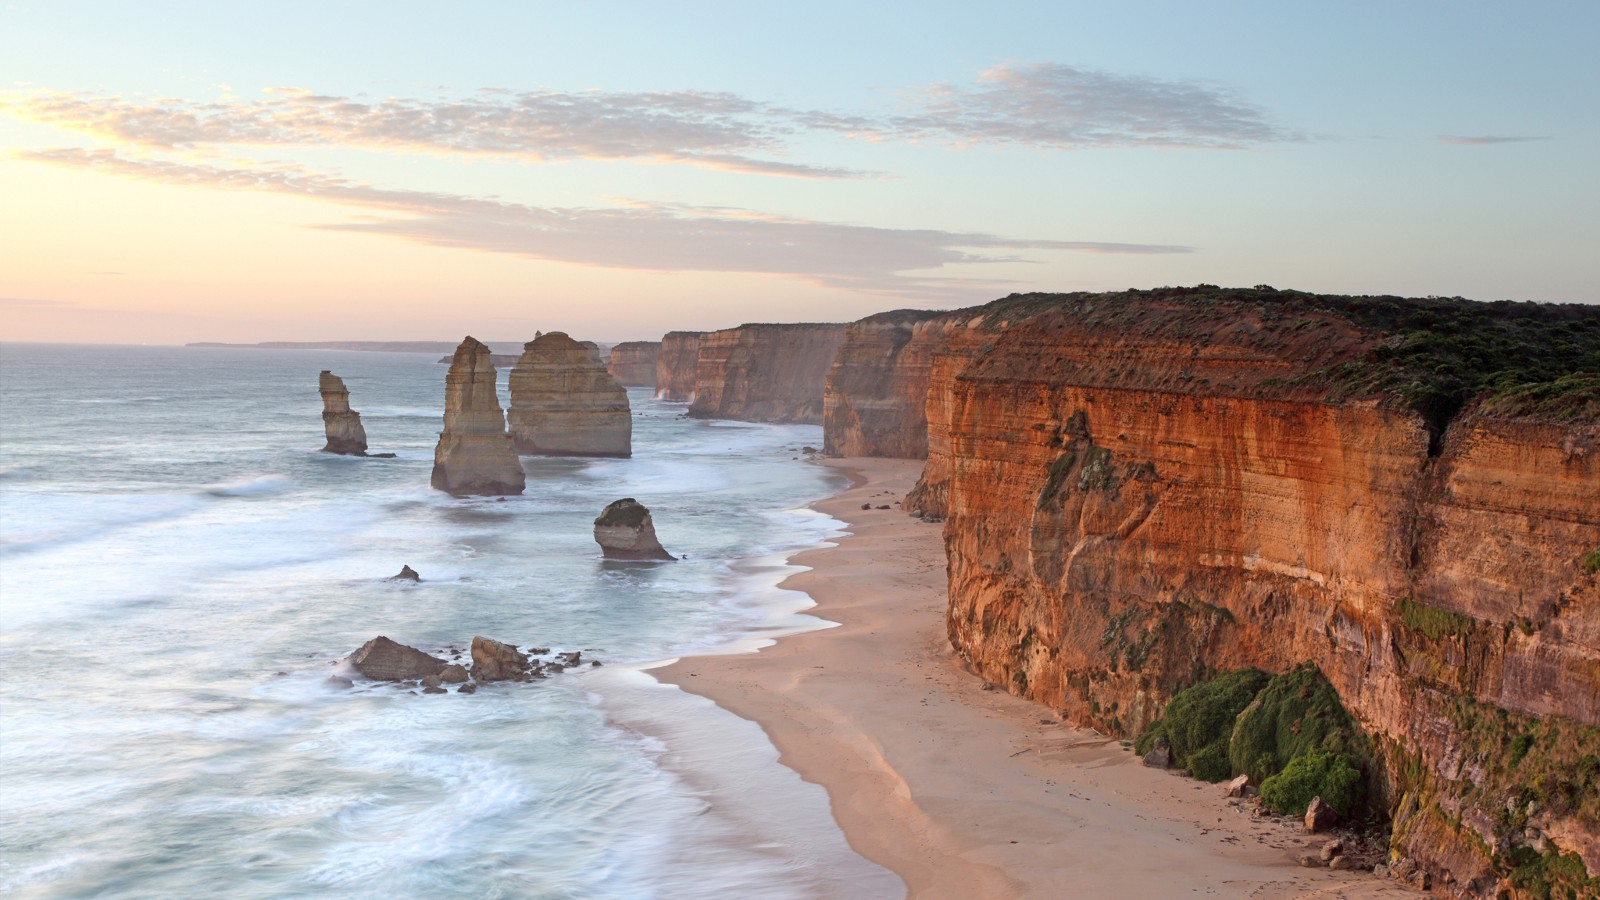 The Twelve Apostles limestone stacks, by the Great Ocean Road in Victoria, Australia